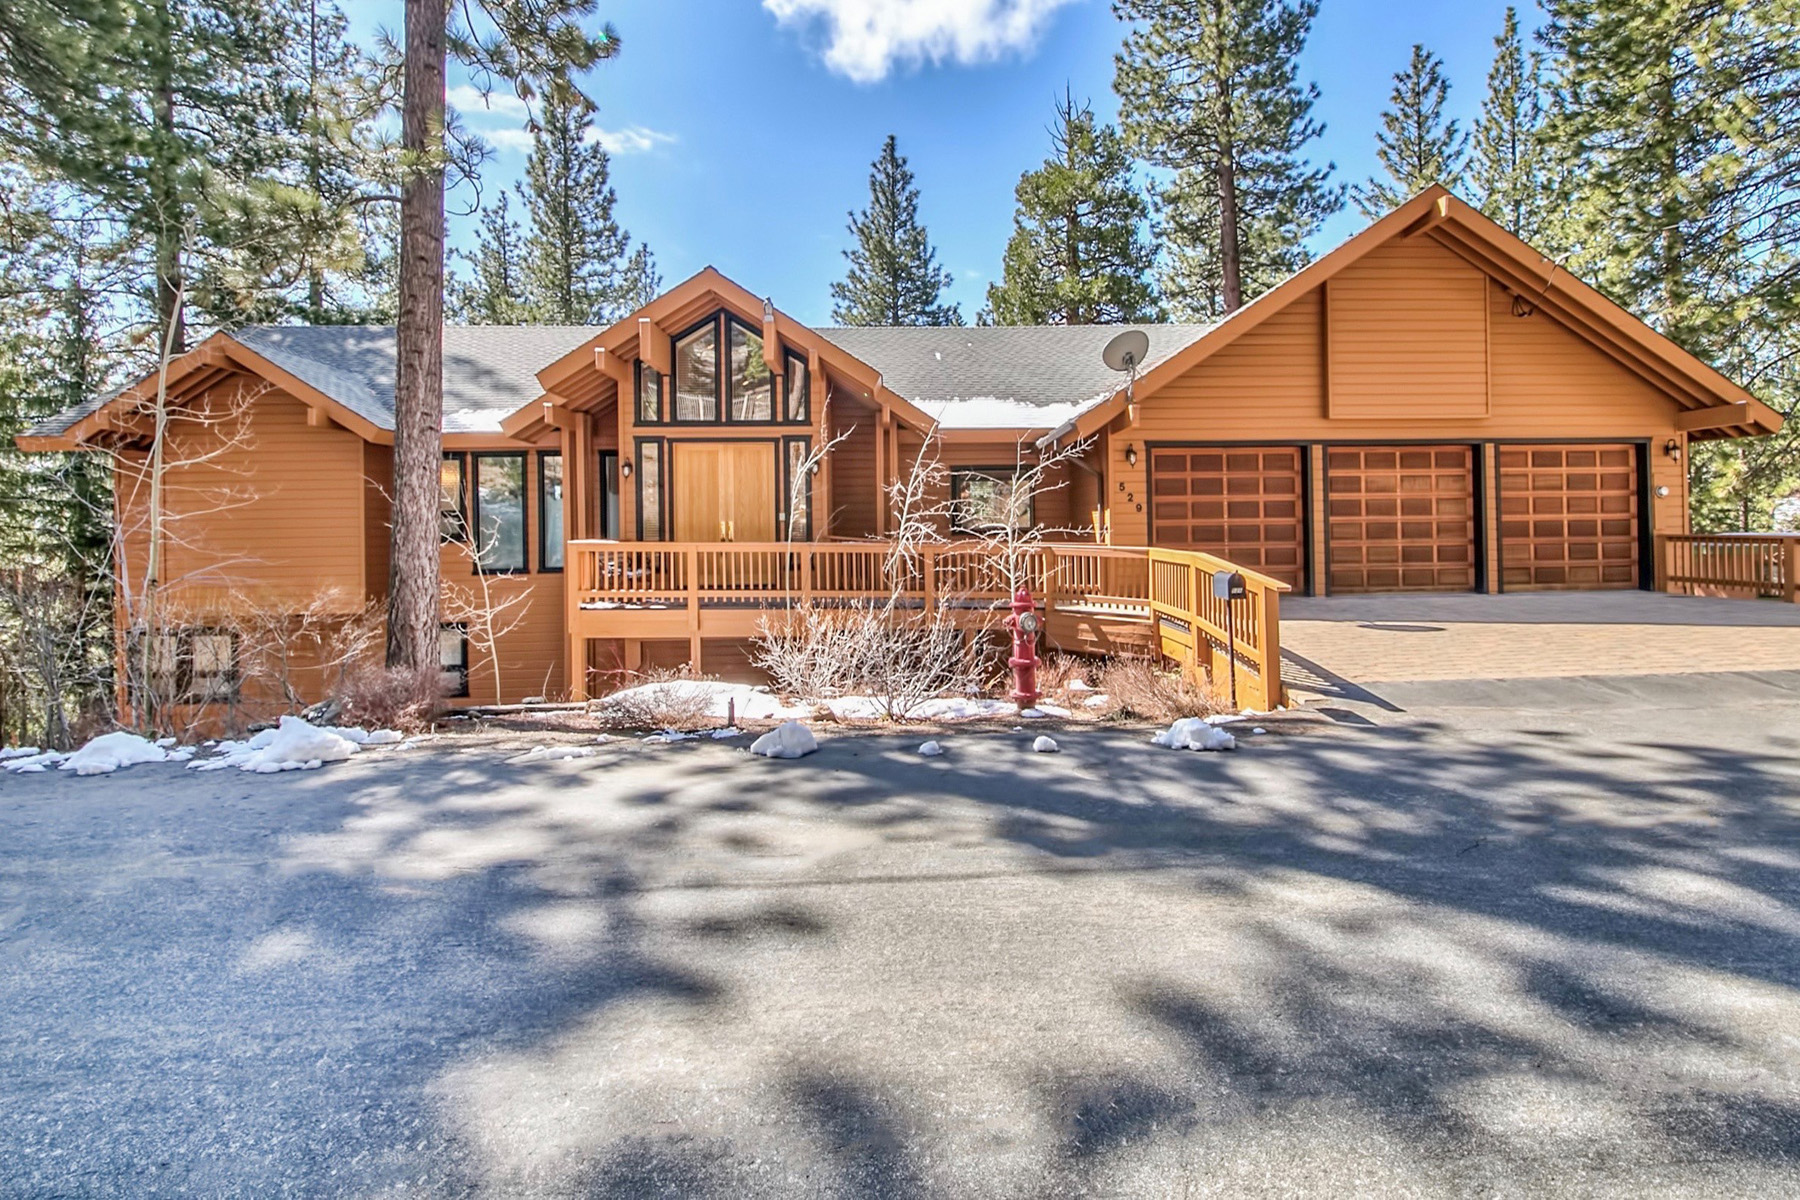 Single Family Home for Sale at 529 Ponderosa Avenue, Incline Village, Nevada Incline Village, Nevada, 89451 Lake Tahoe, United States